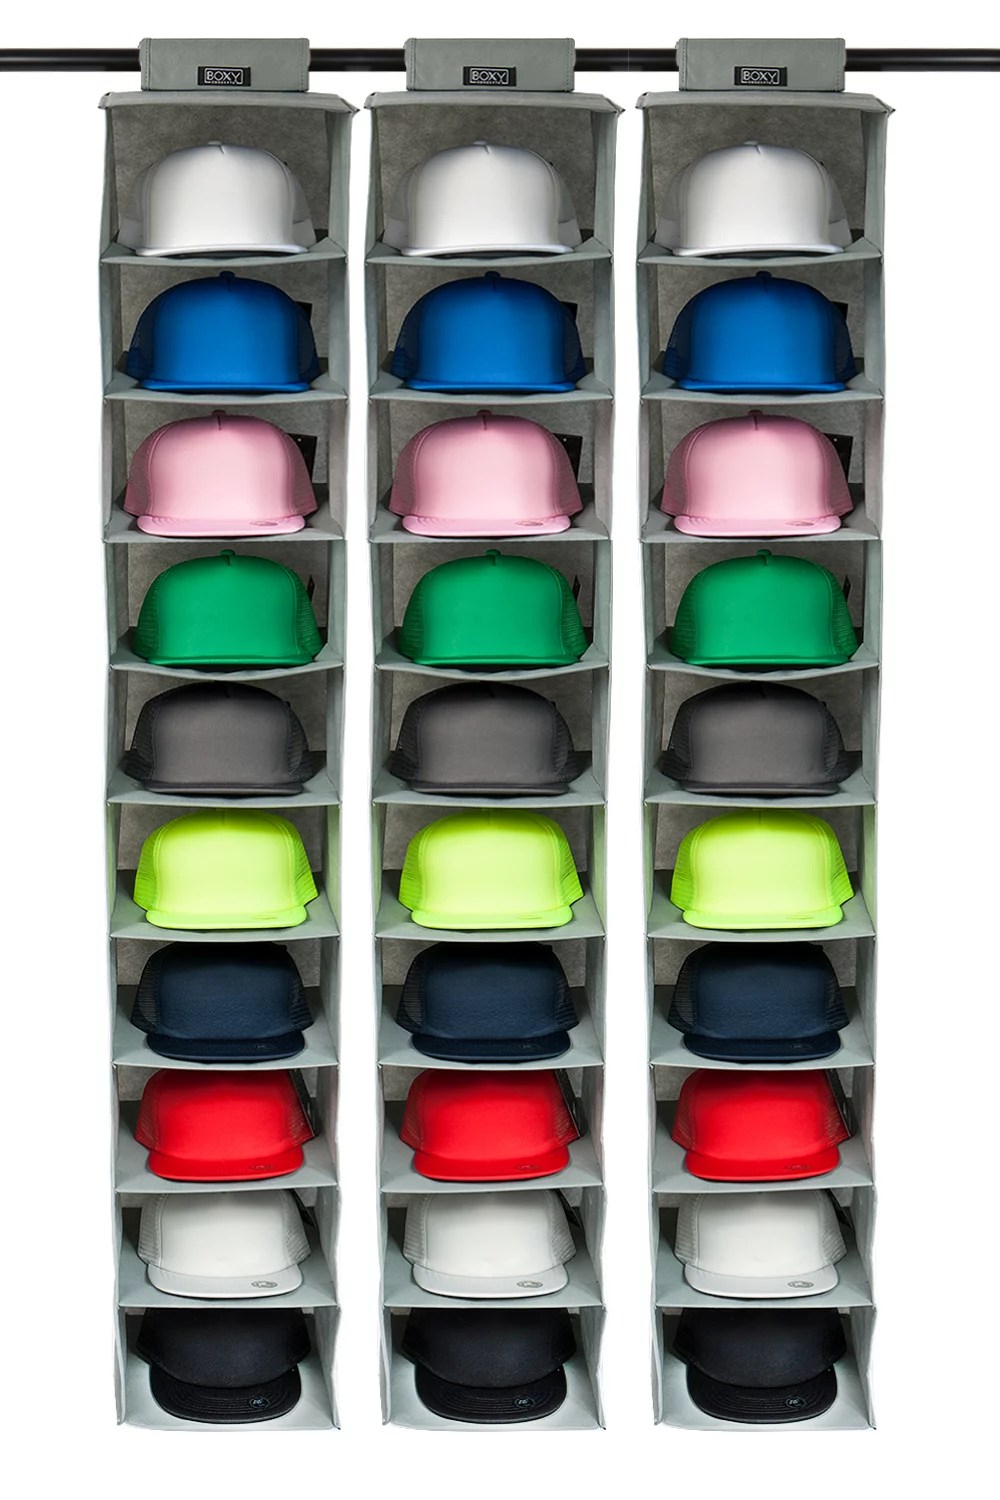 hat rack 10 shelf hanging closet hat organizer for hat storage protect your caps keep them in great condition easy hat holder baseball cap